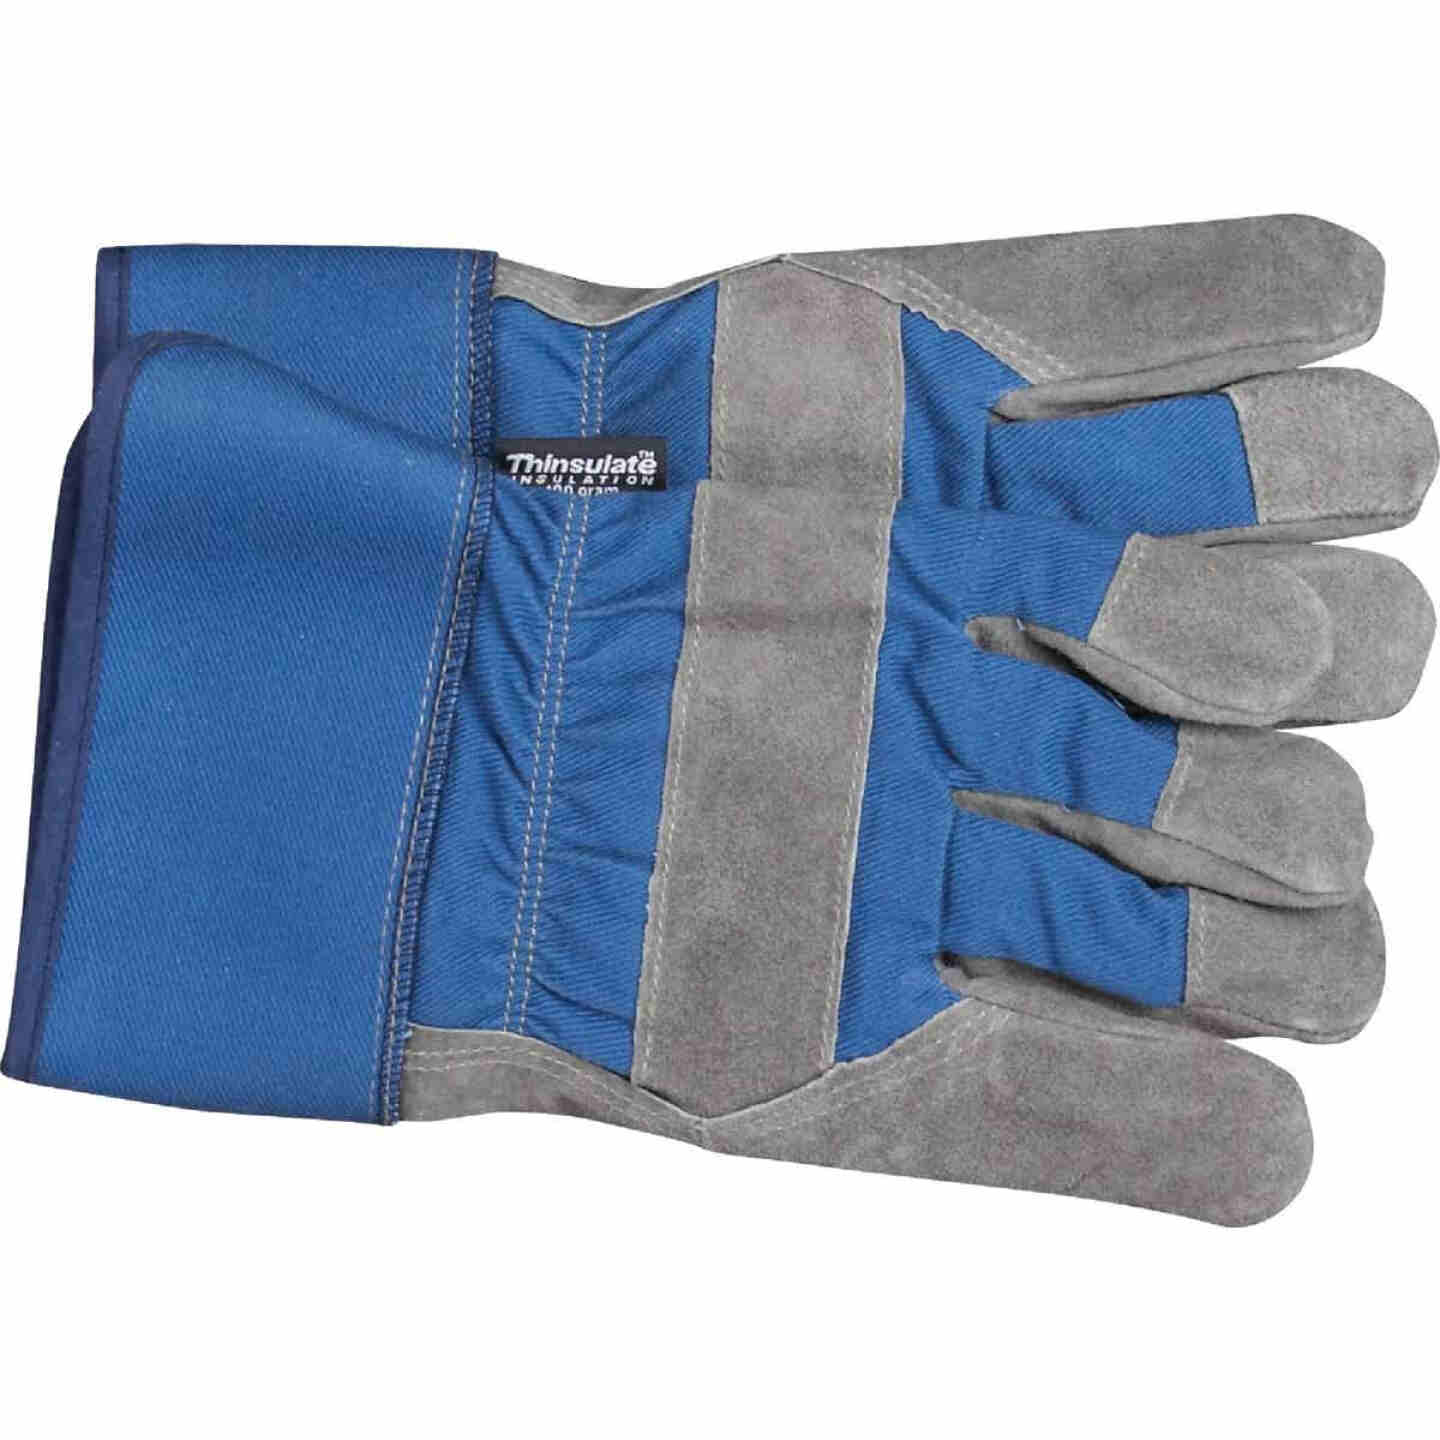 Do it Best Men's Large Leather Winter Work Glove Image 5